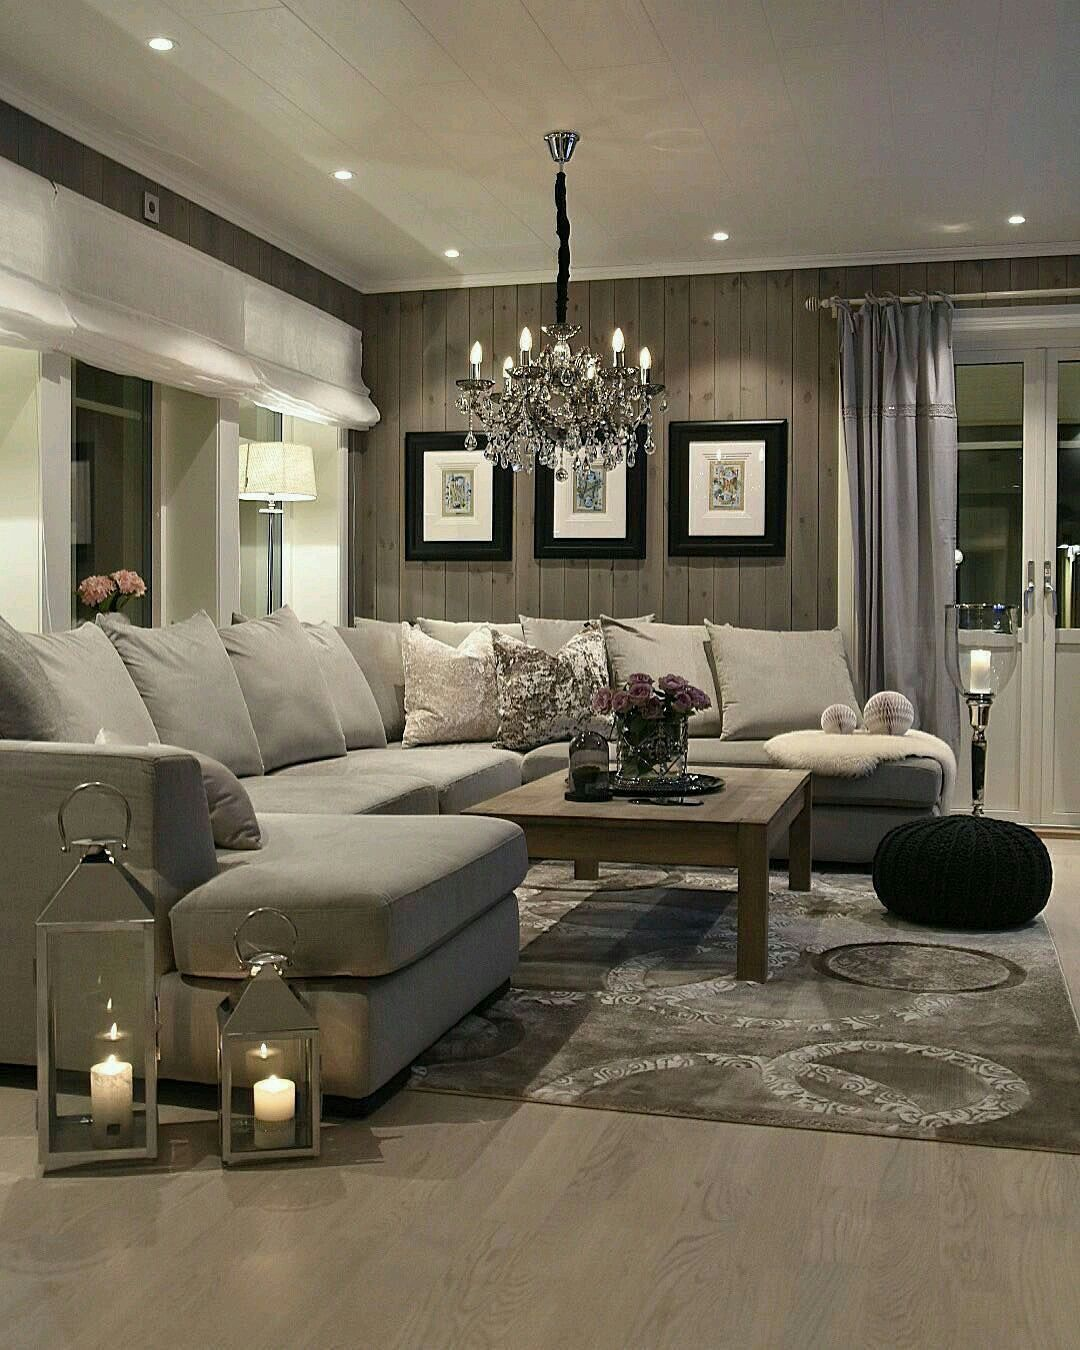 Interior Design Ideas Living Room Pictures Carpet For 30 Best Decorating Designs Proportion Is One Of The Key Elements Essentially This Concept Boils